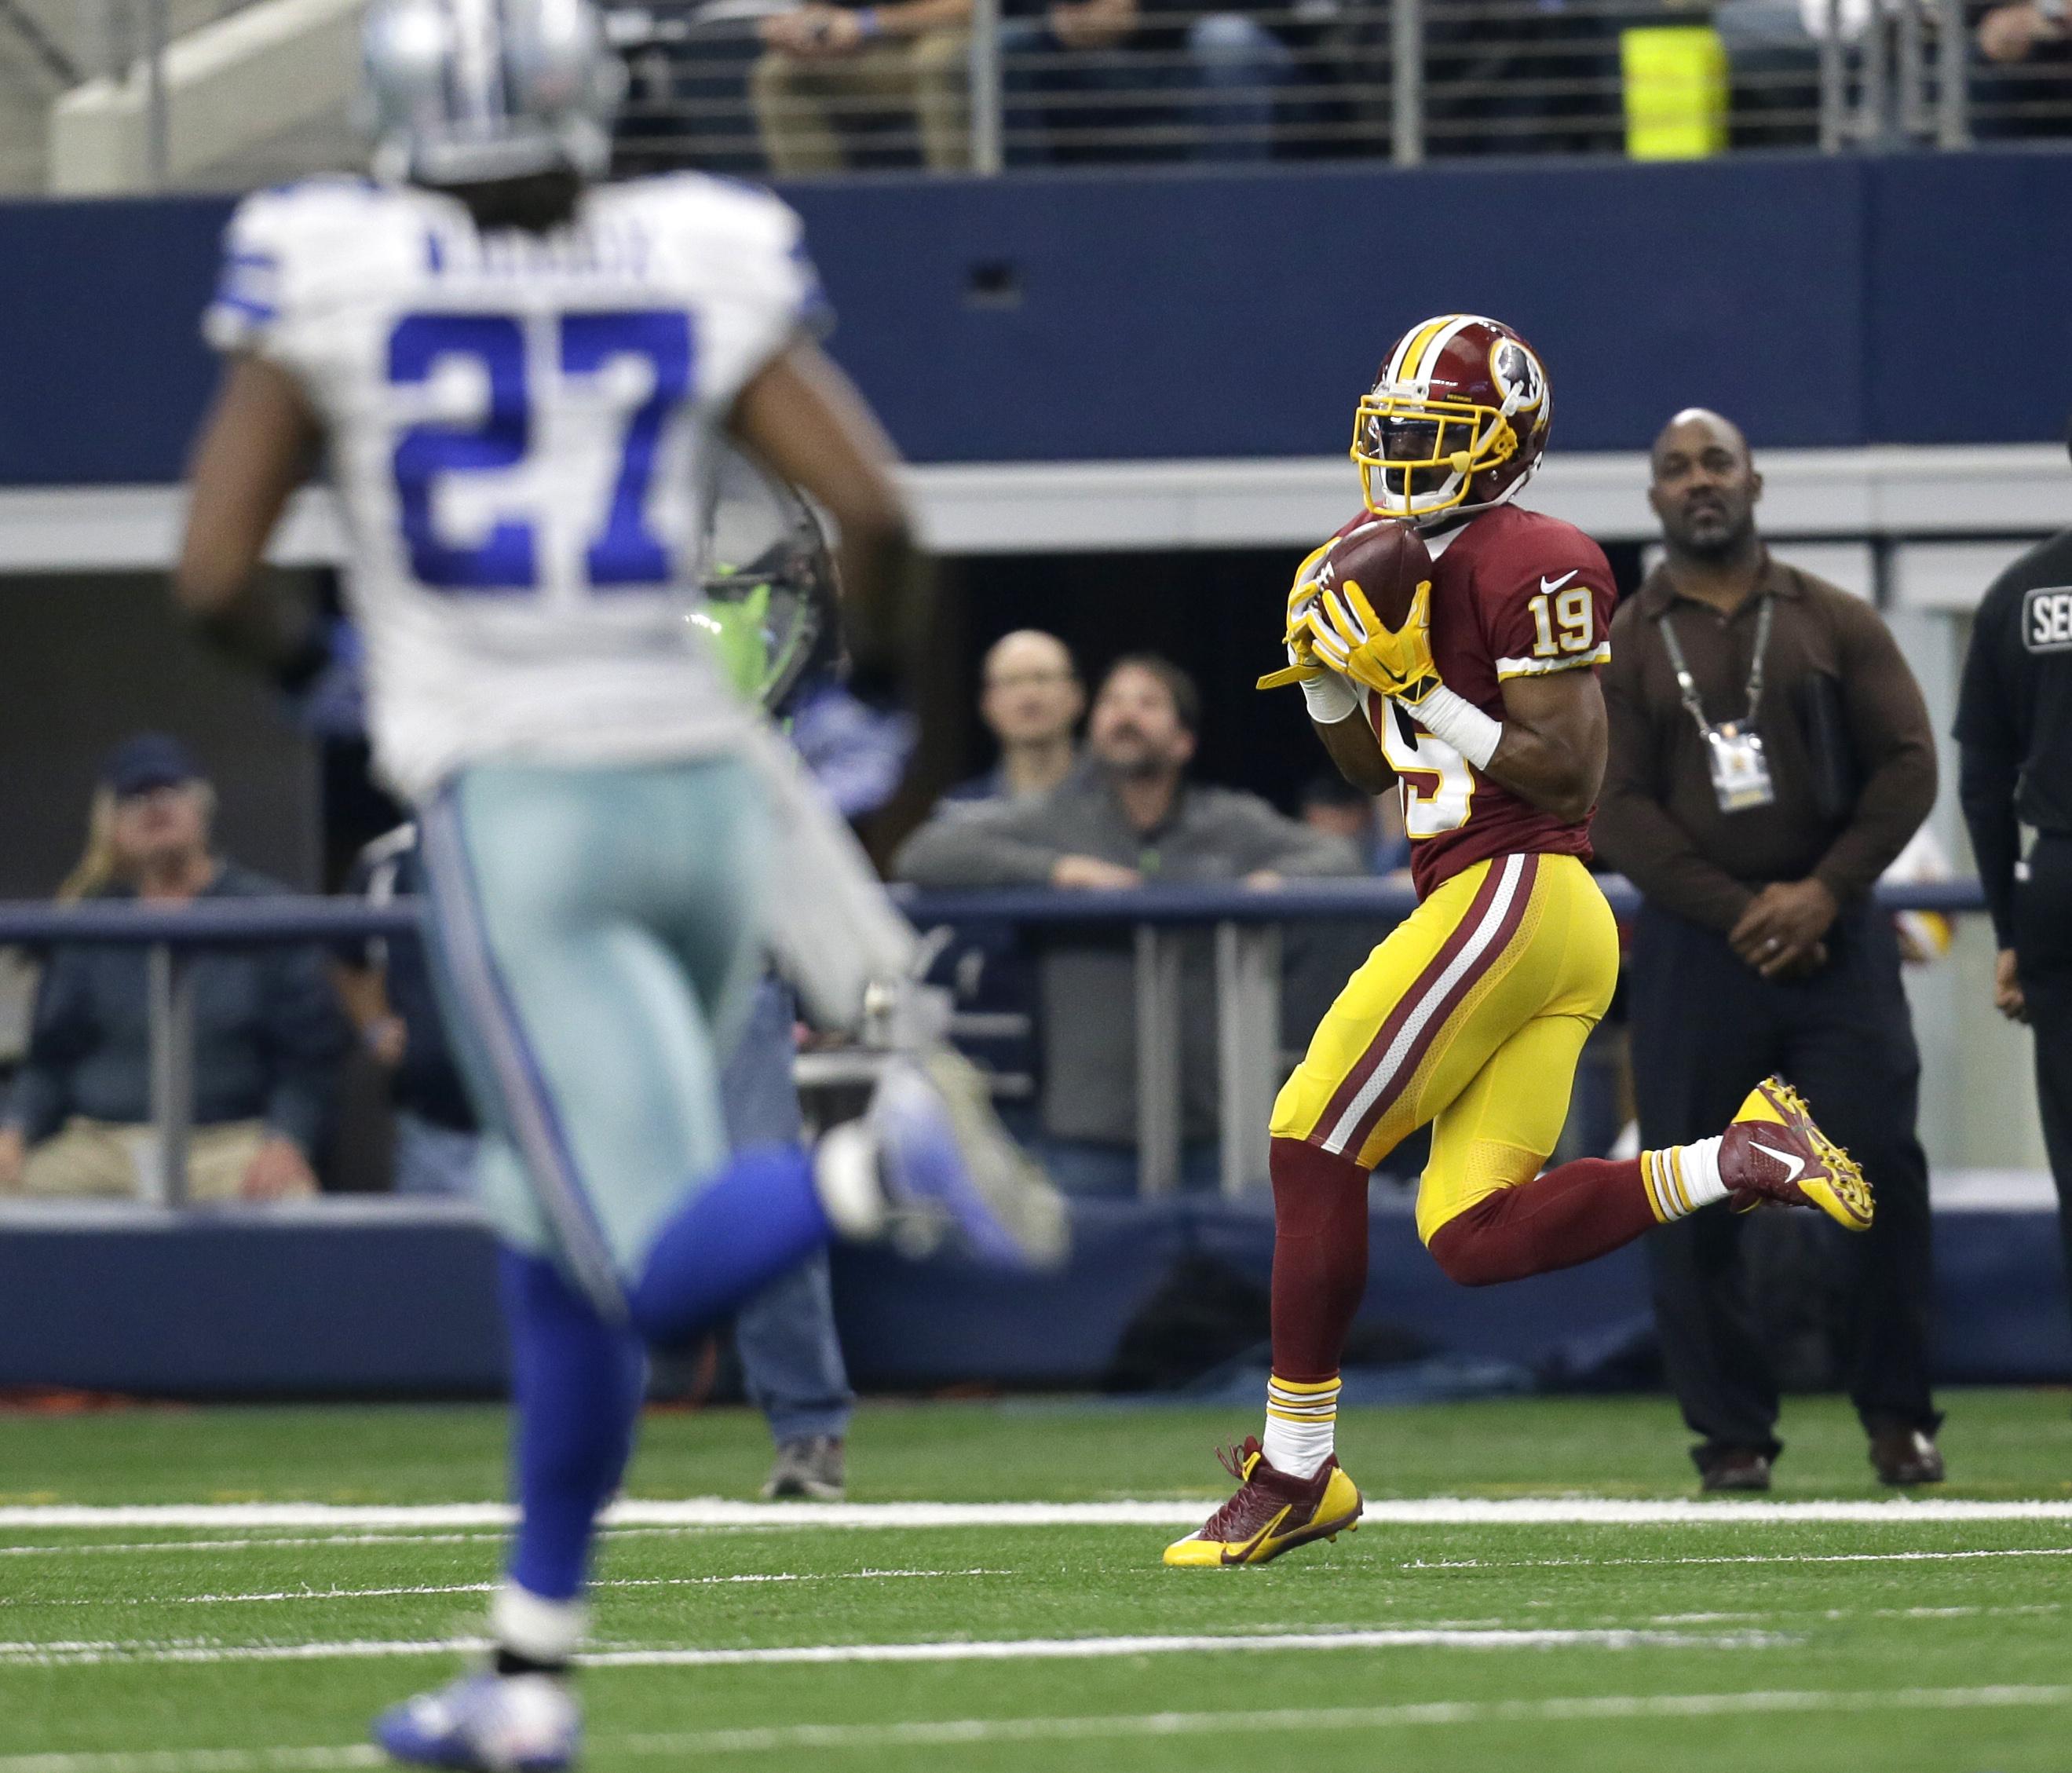 Dallas Cowboys' J.J. Wilcox (27) watches as Washington Redskins wide receiver Rashad Ross (19) catches a long pass that he ran for a touchdown in the second half of an NFL football game, Sunday, Jan. 3, 2016, in Arlington, Texas. (AP Photo/Tim Sharp)